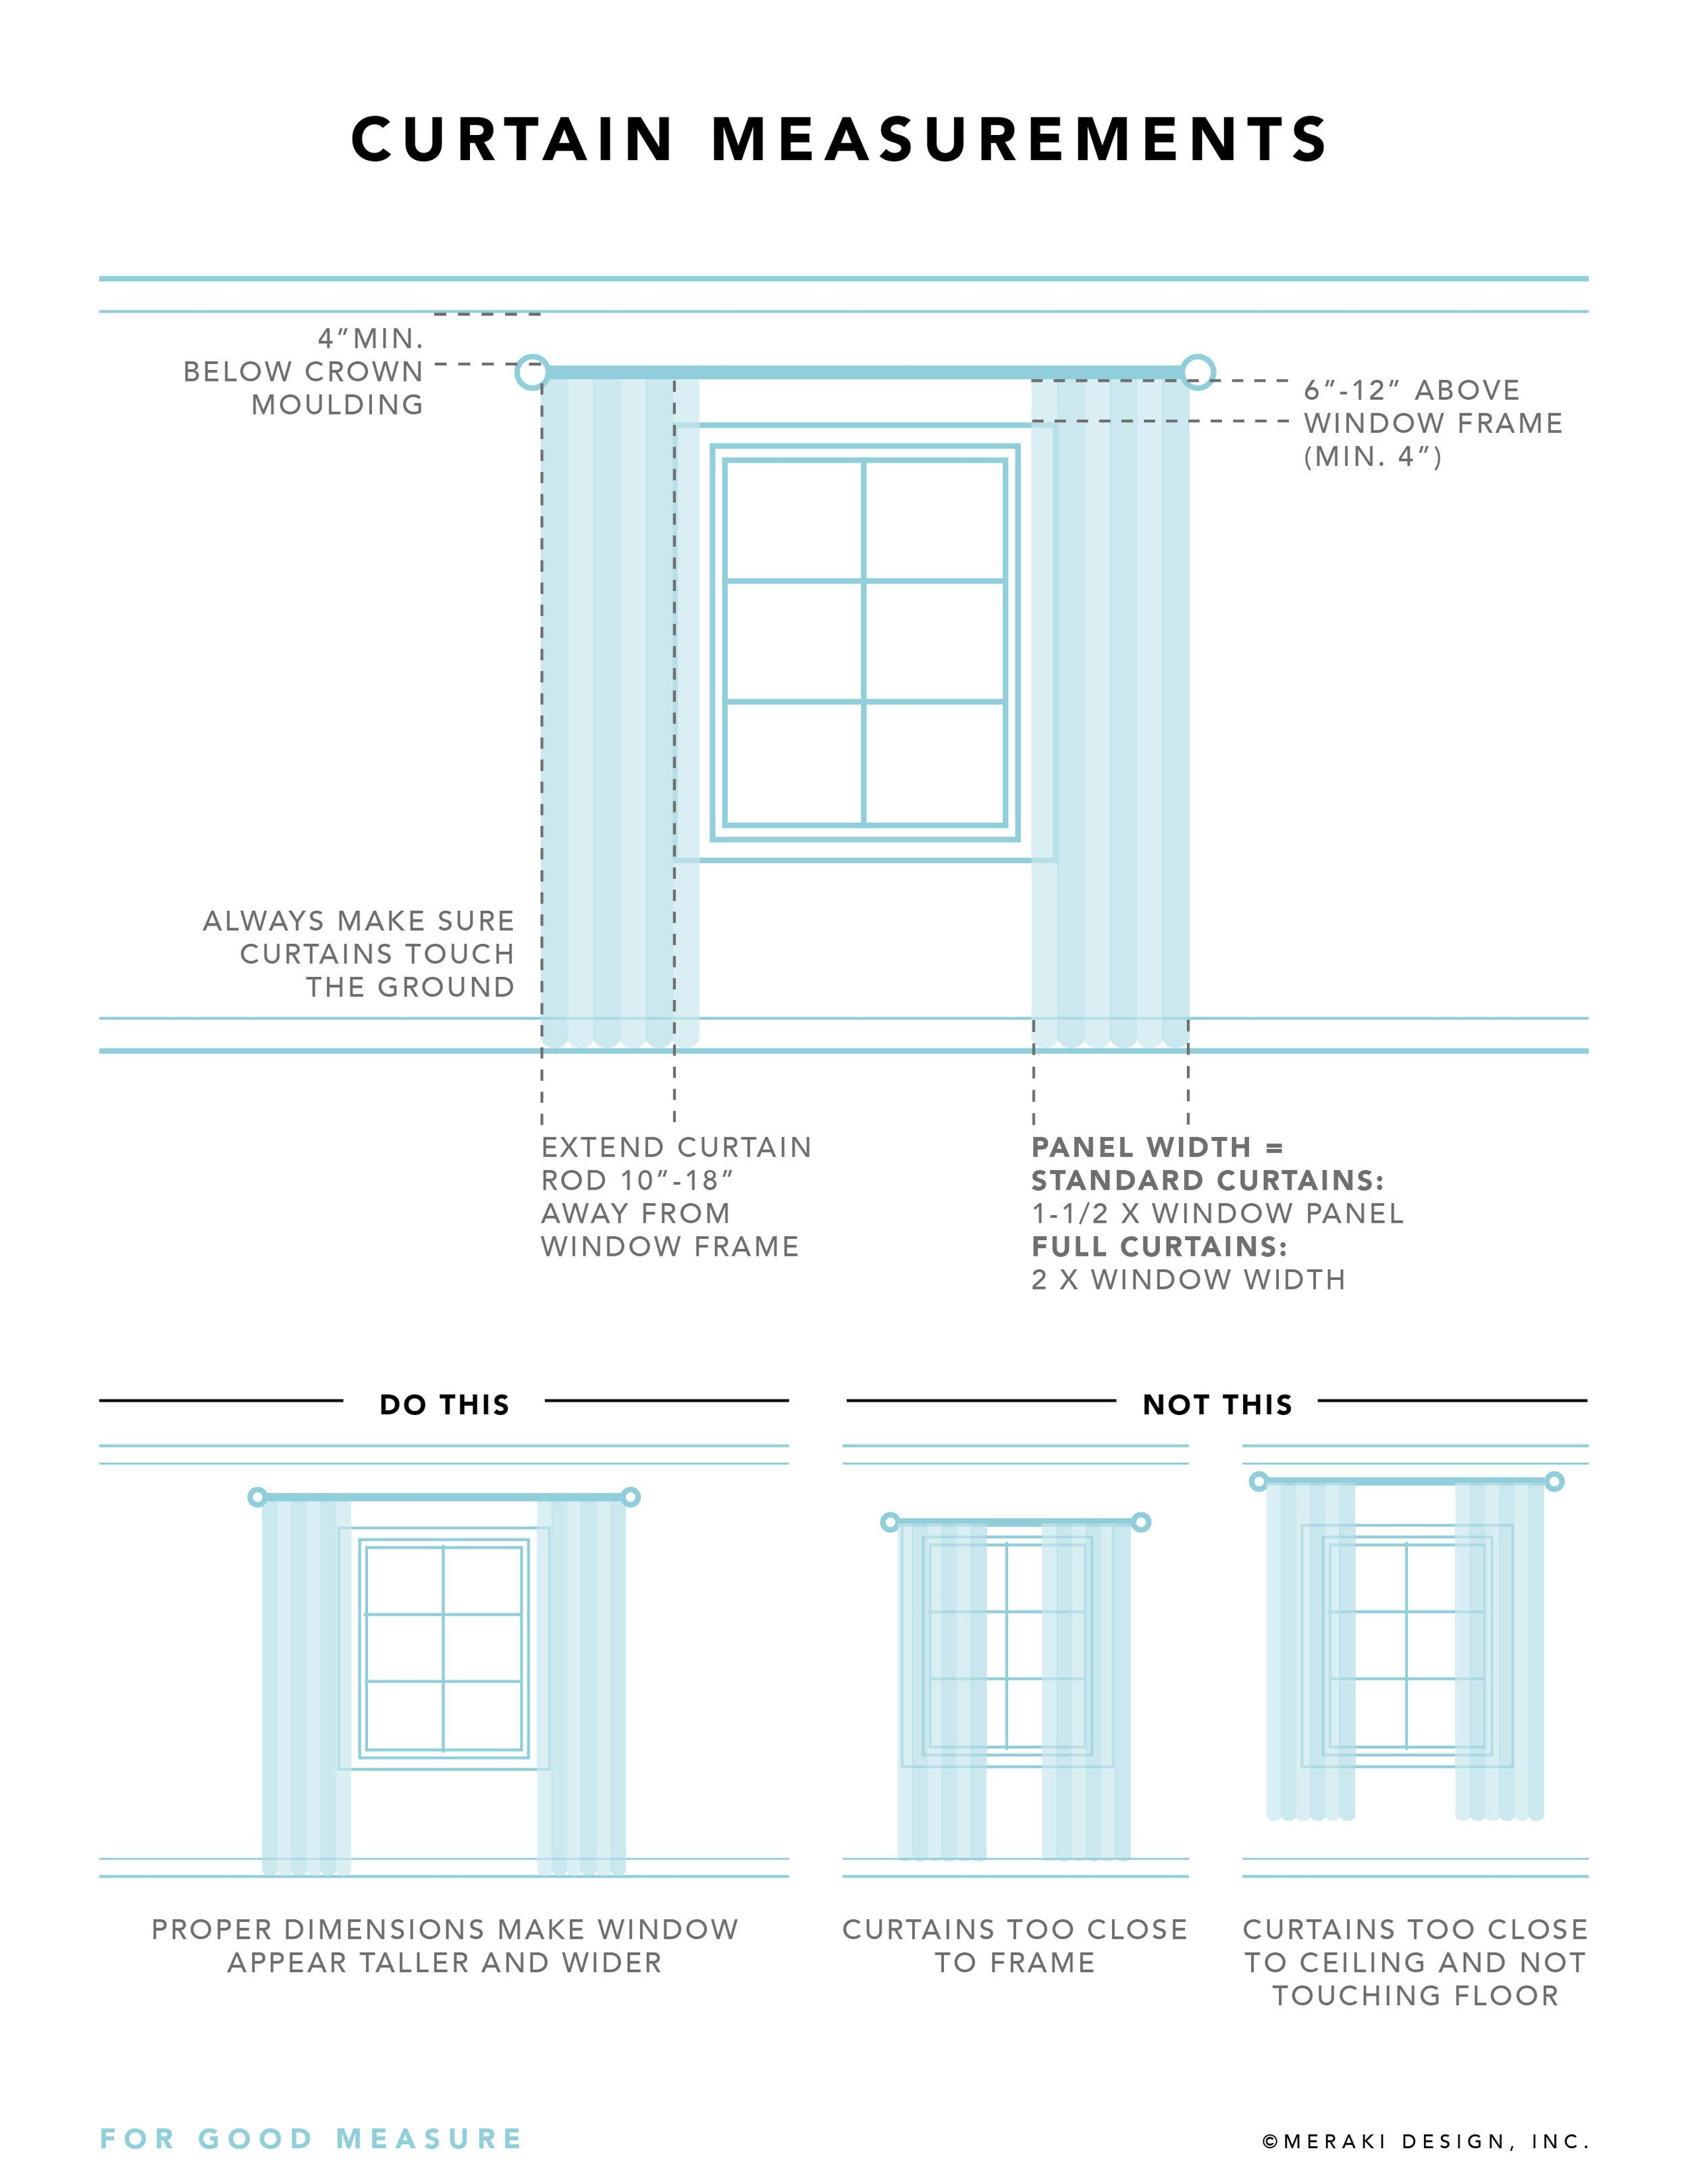 Interior Design Measurements That Will Turn You Into A